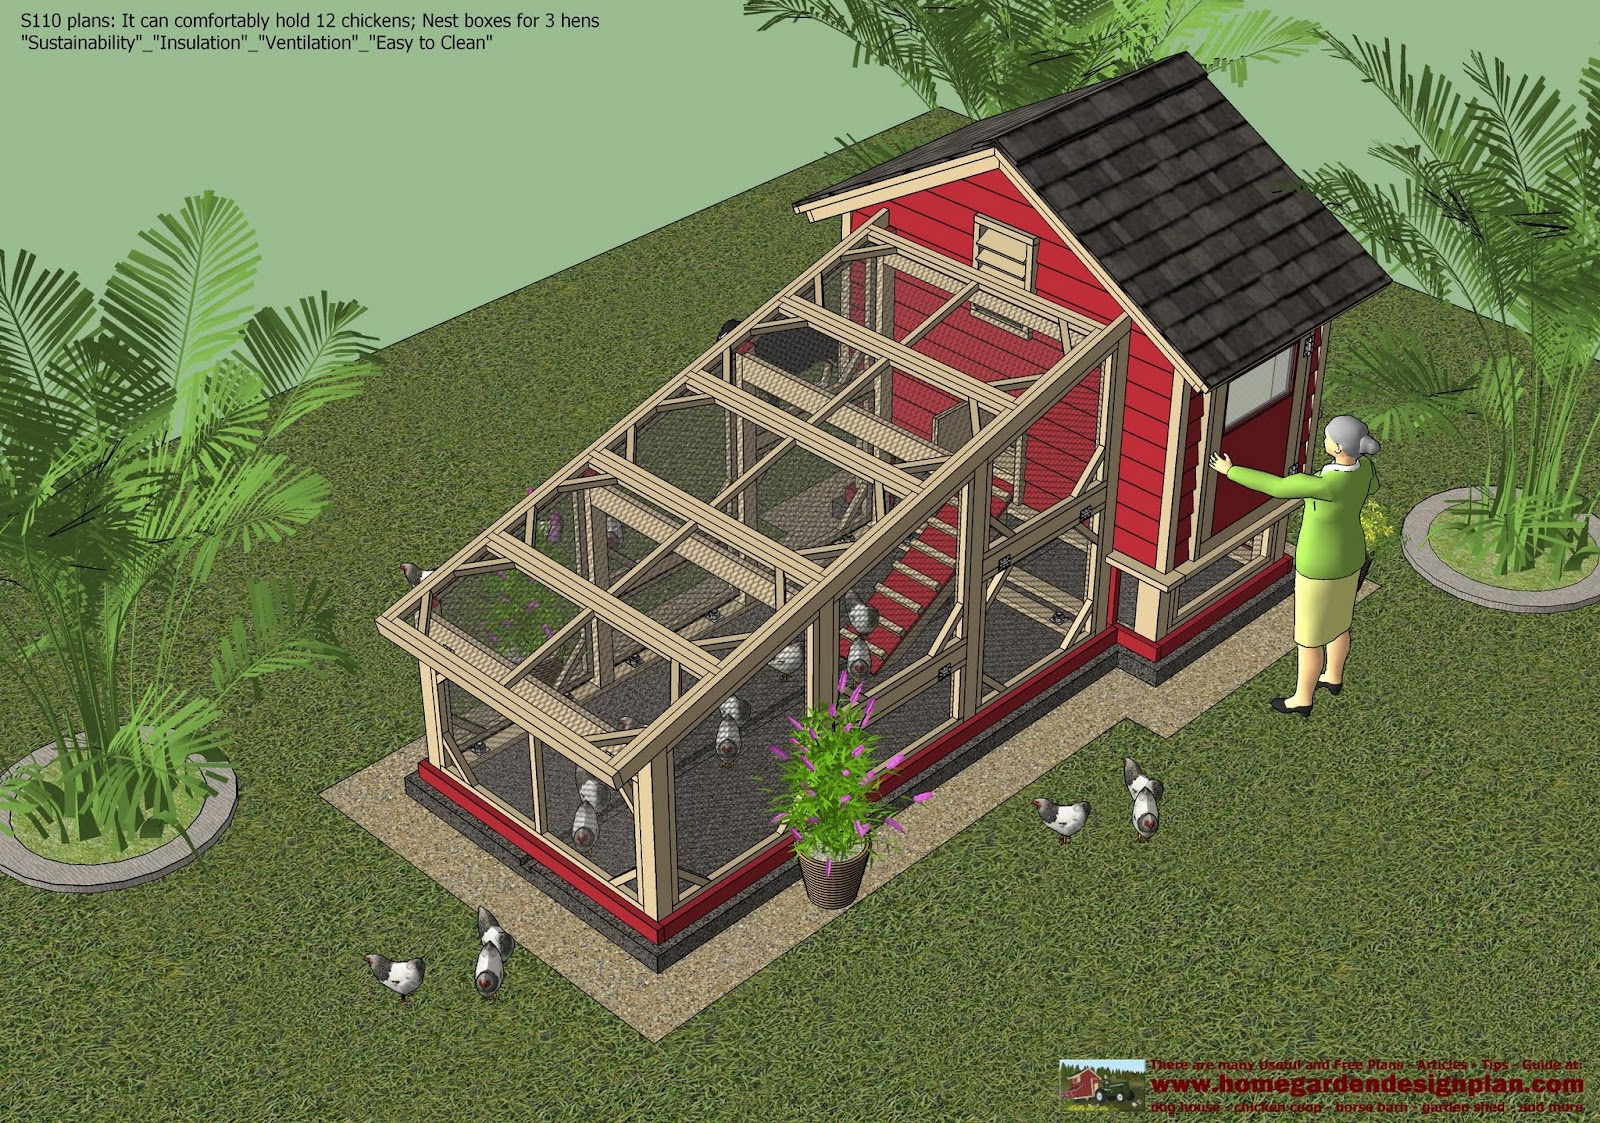 sntila s110 chicken coop plans construction chicken coop